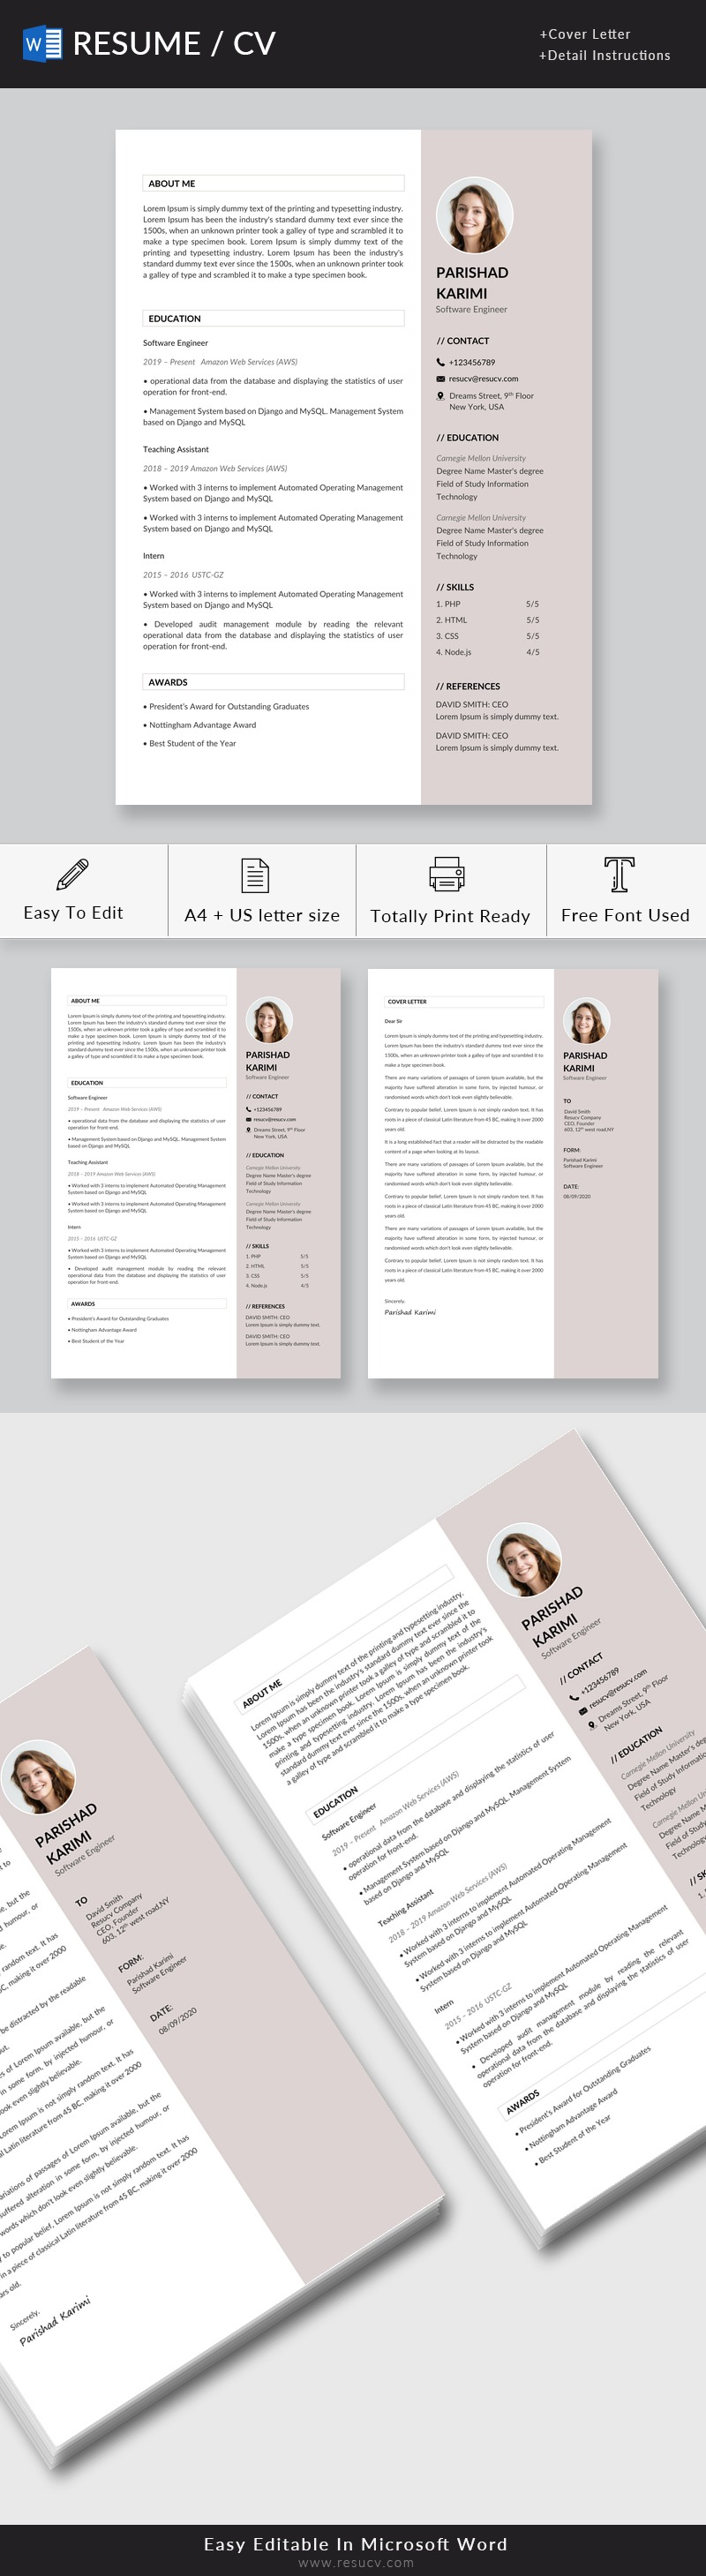 Clean software engineer resume template with cover letter